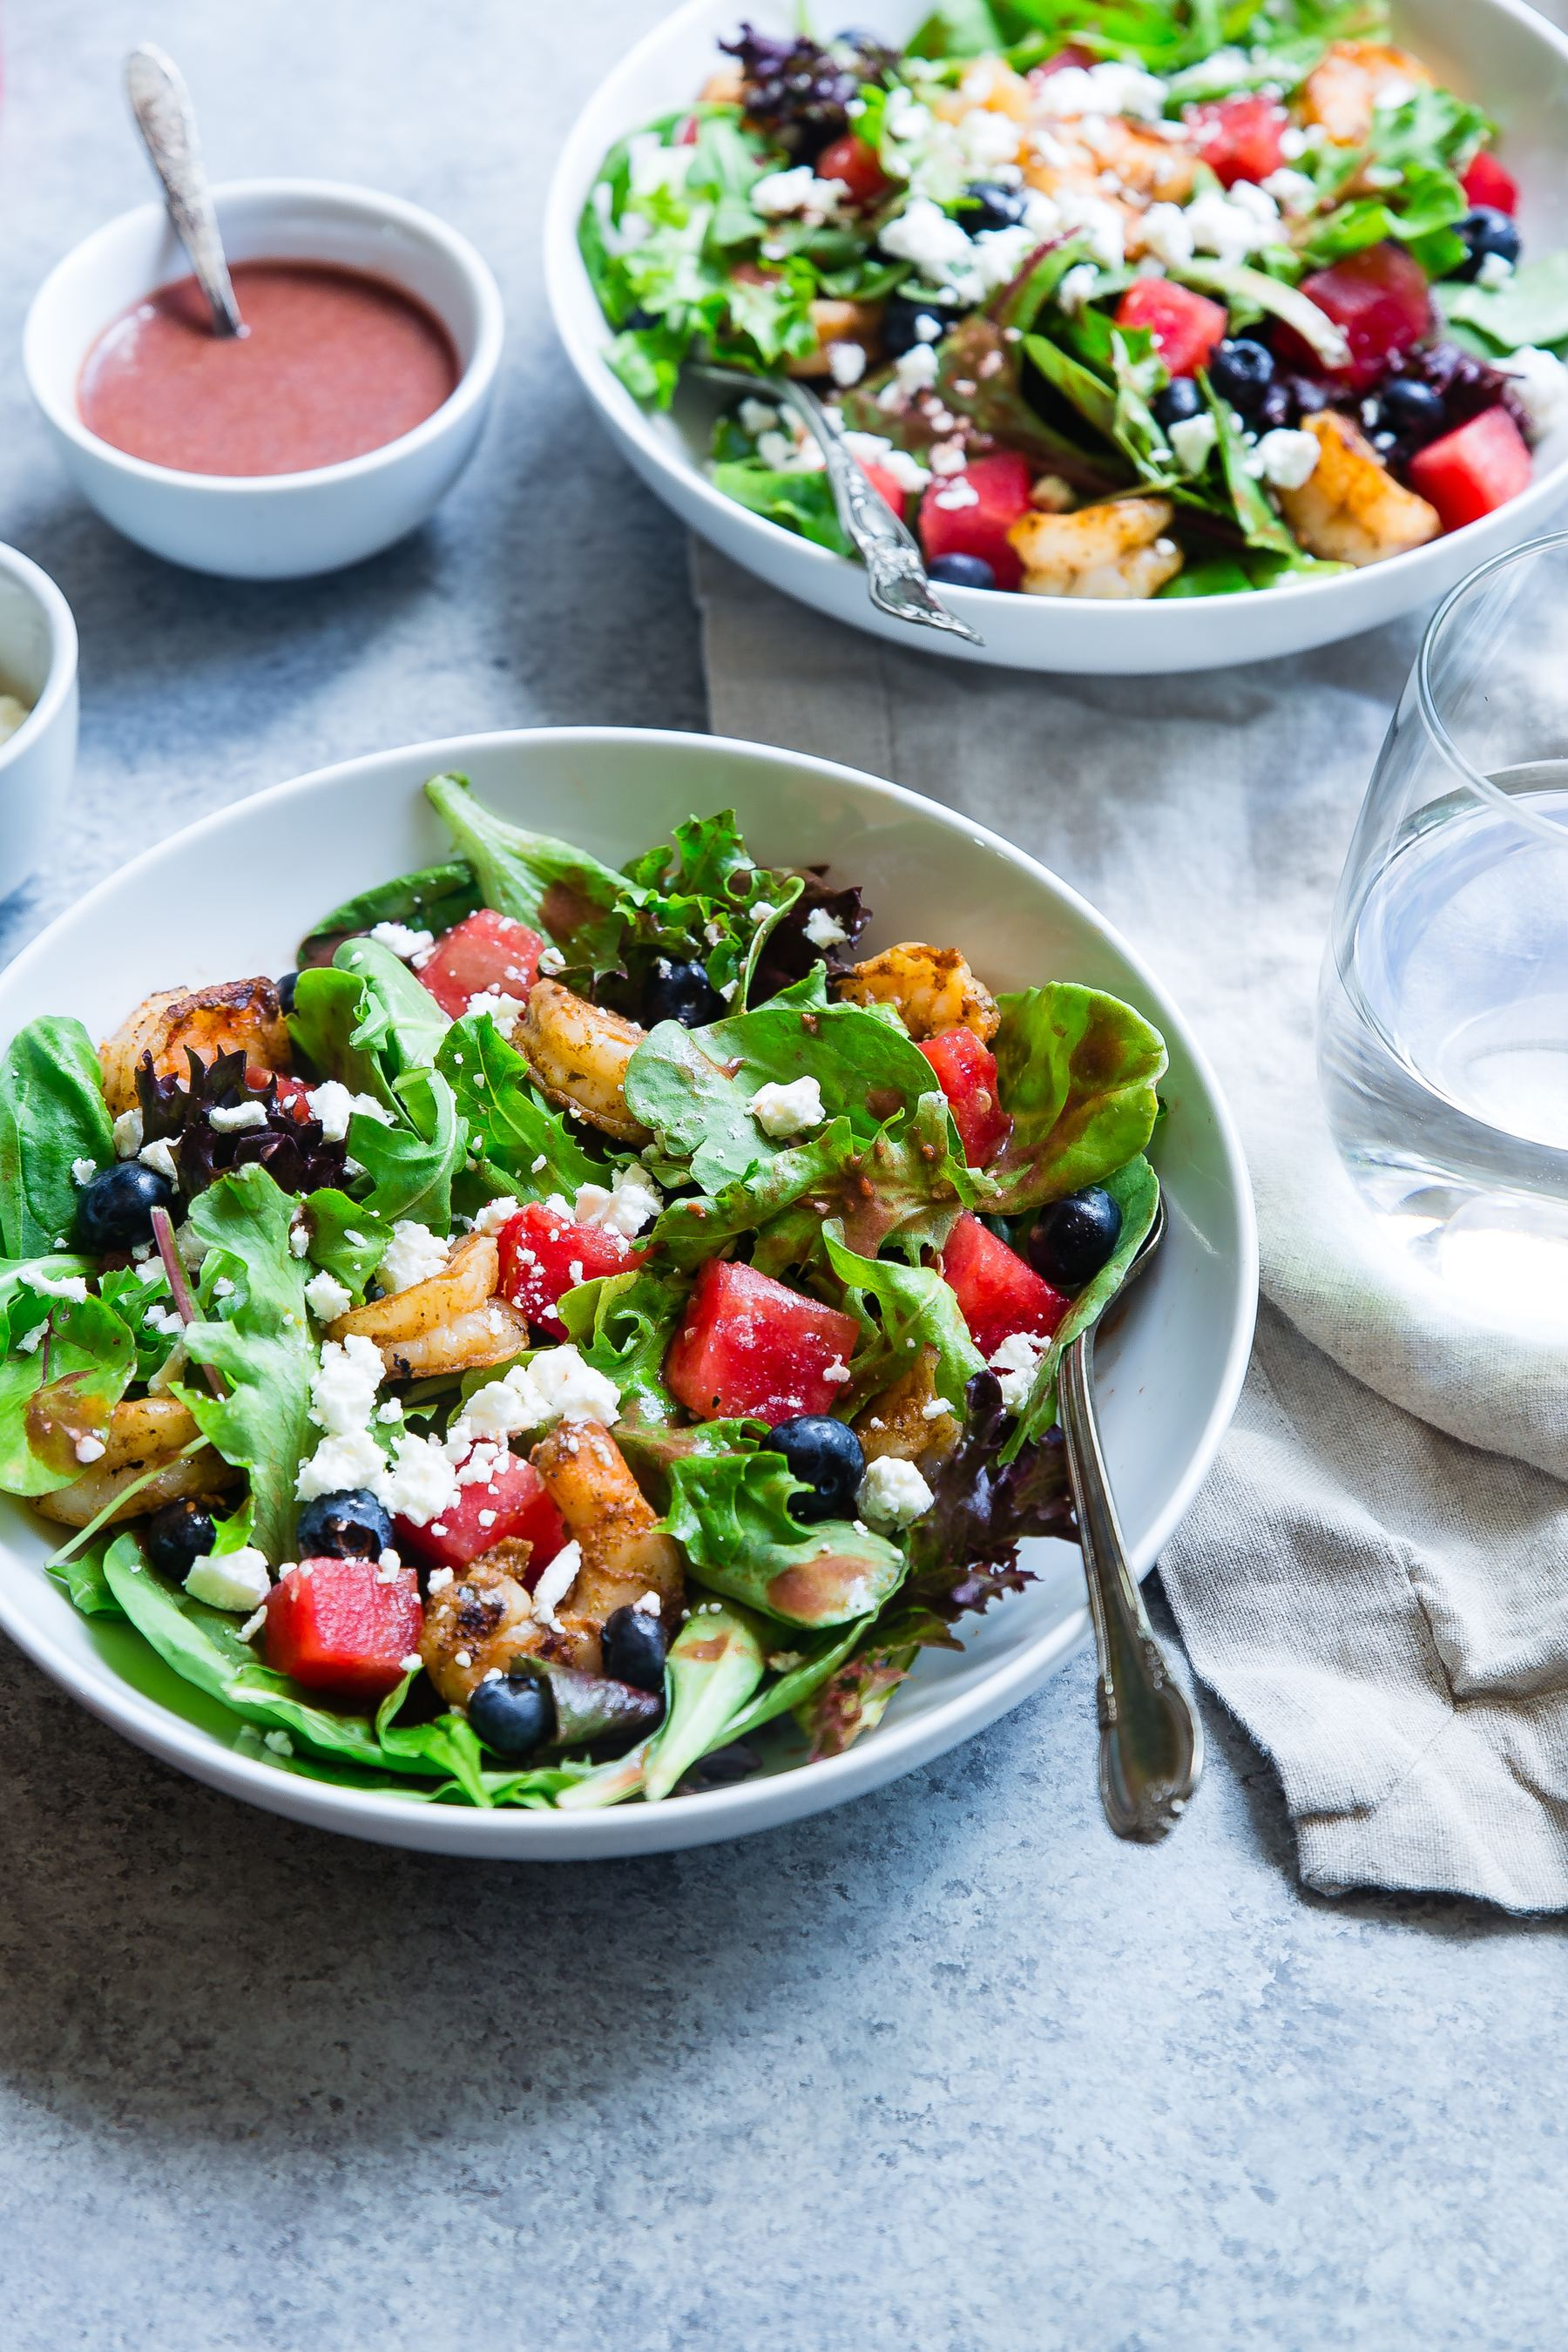 Photo of salad on table with dressing